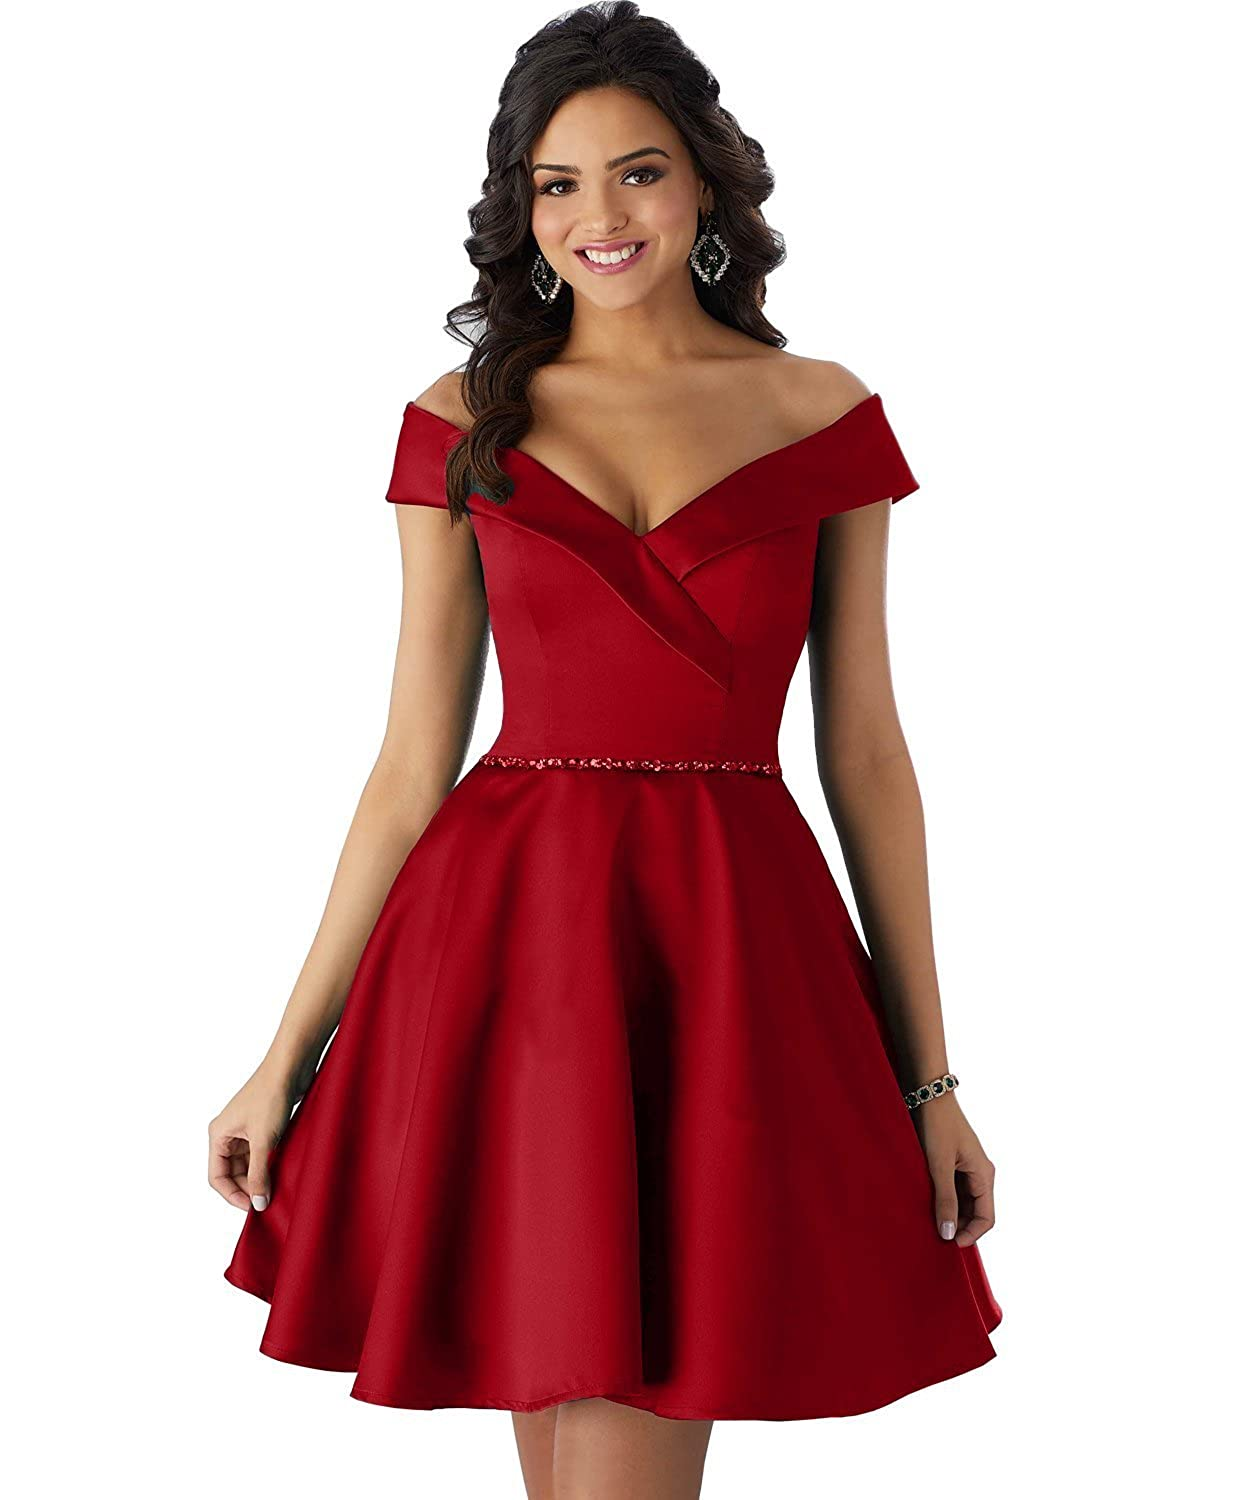 c04b4556053 Loving House Women s Off the Shouder A Line Homecoming Dress Short Beaded  Prom Party Gown P095 Embellishment  Off the Shoulder